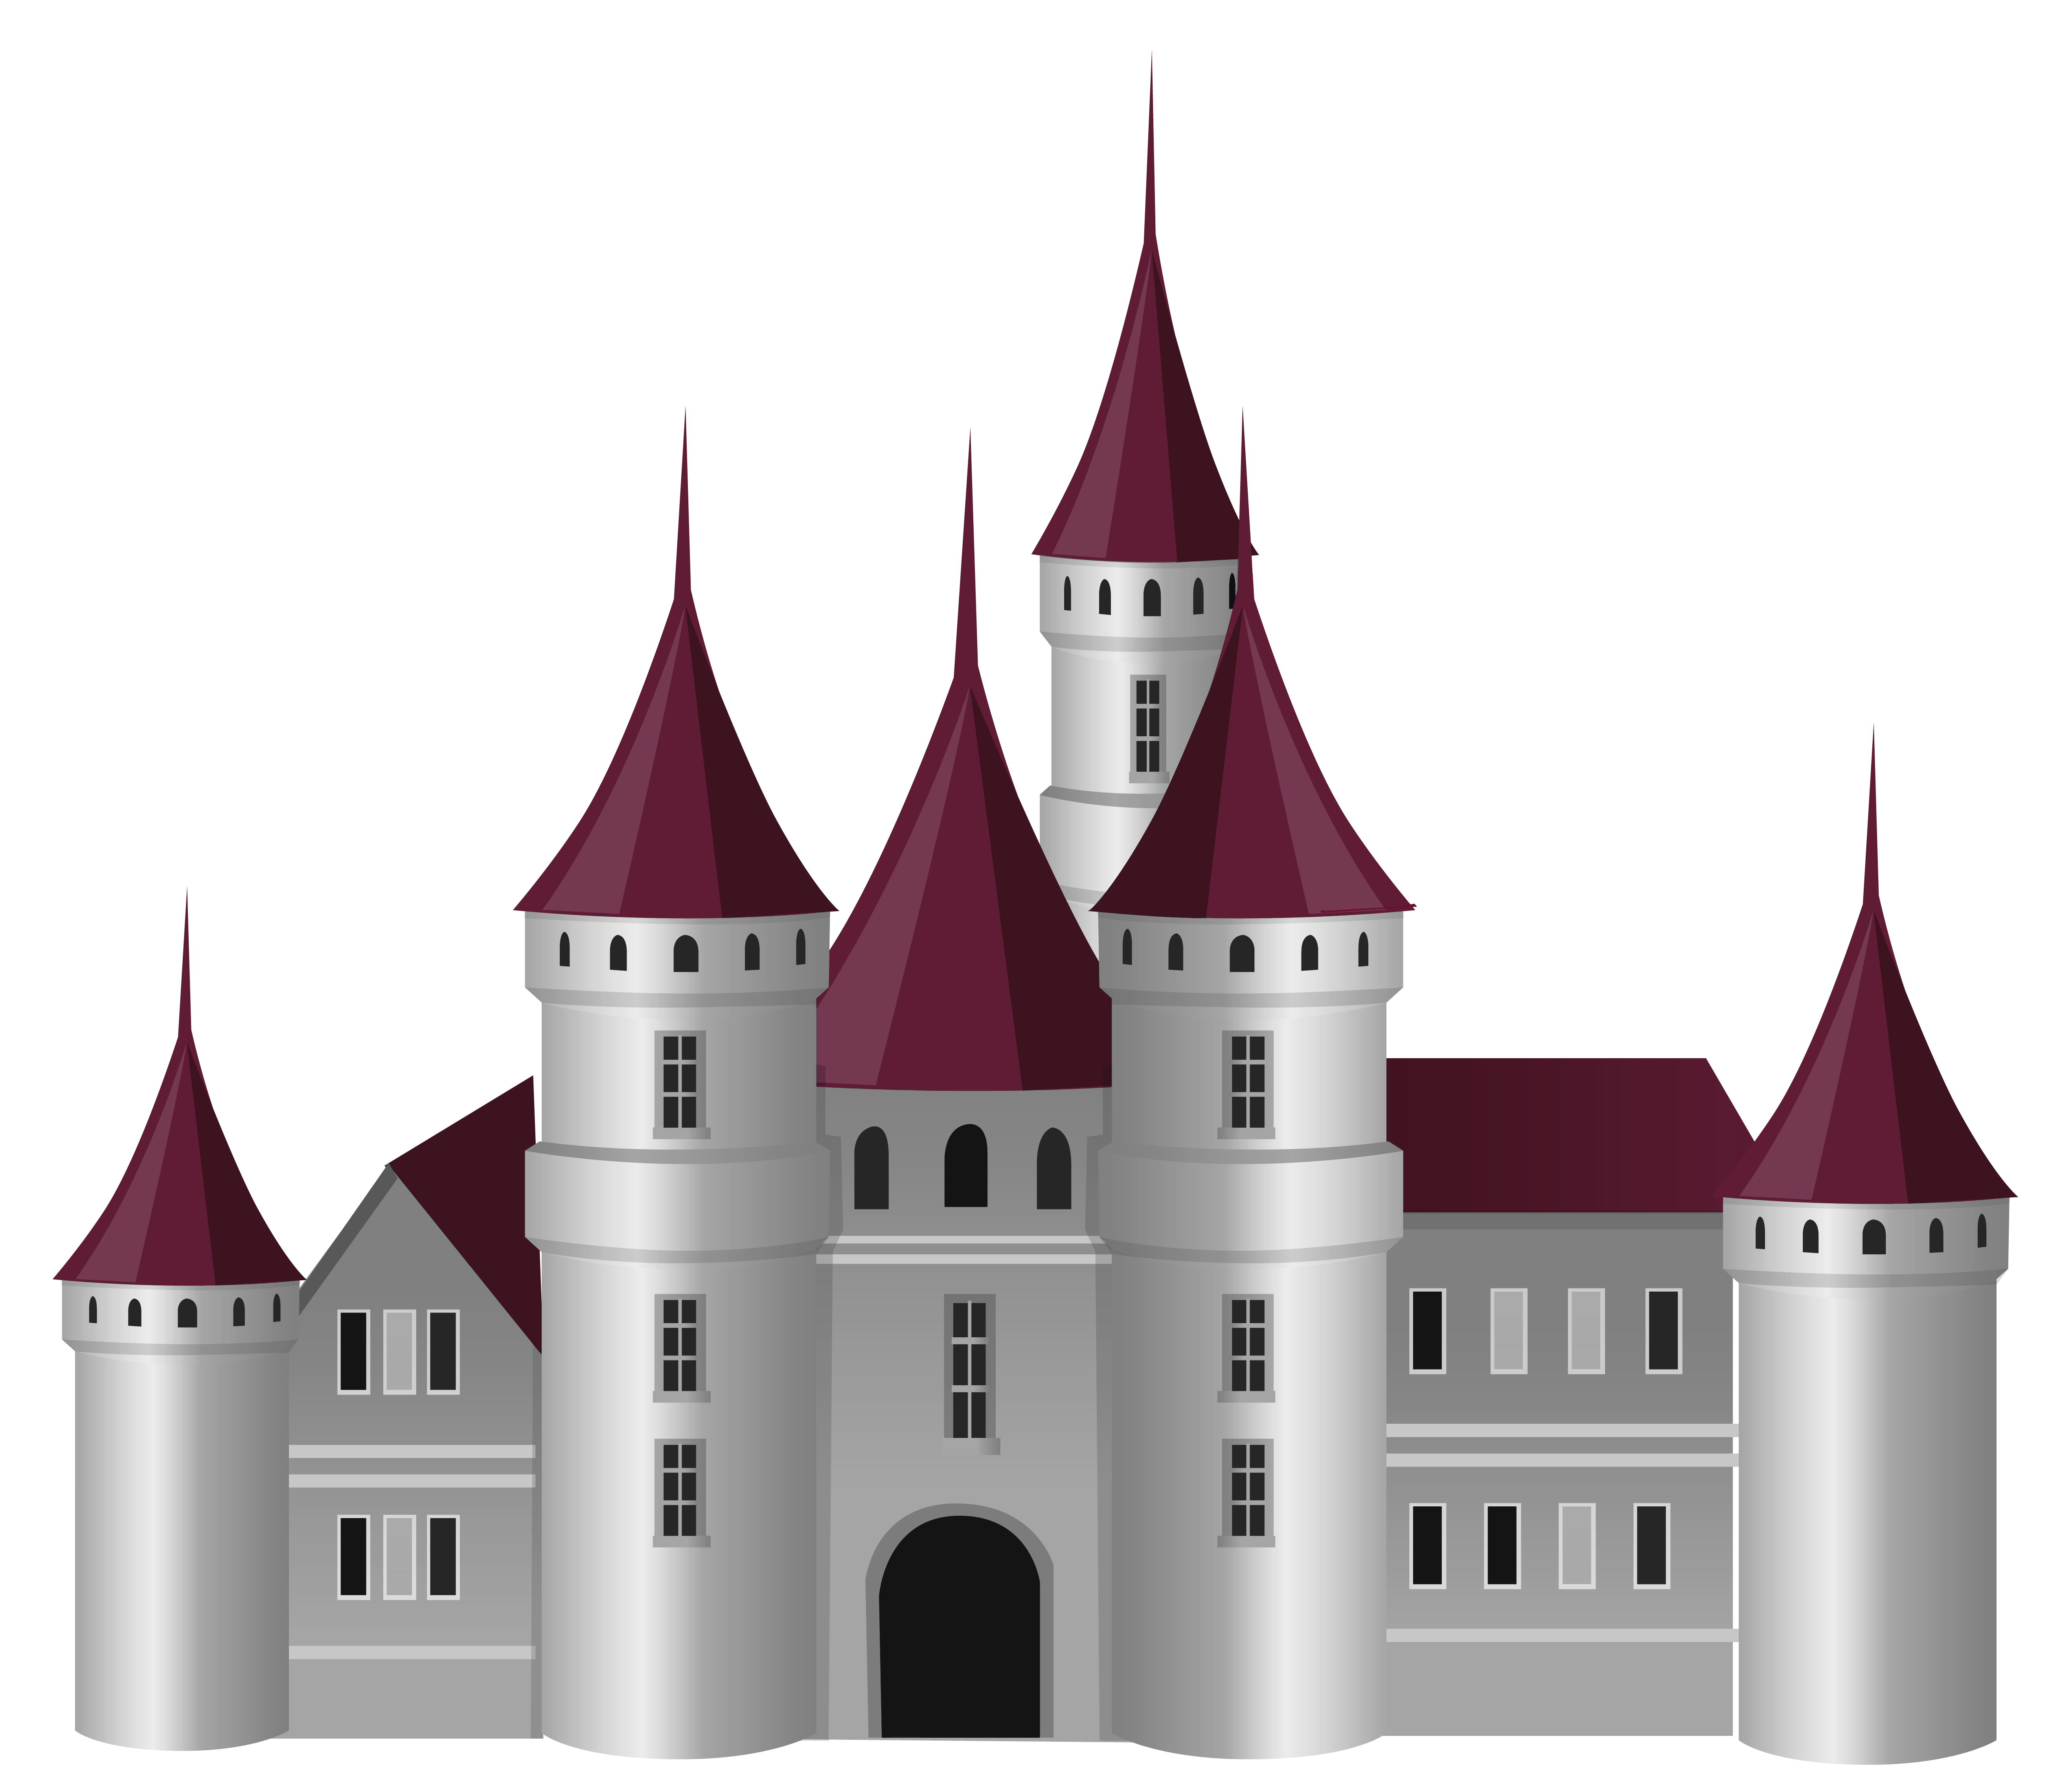 Png picture gallery yopriceville. Clipart castle transparent background